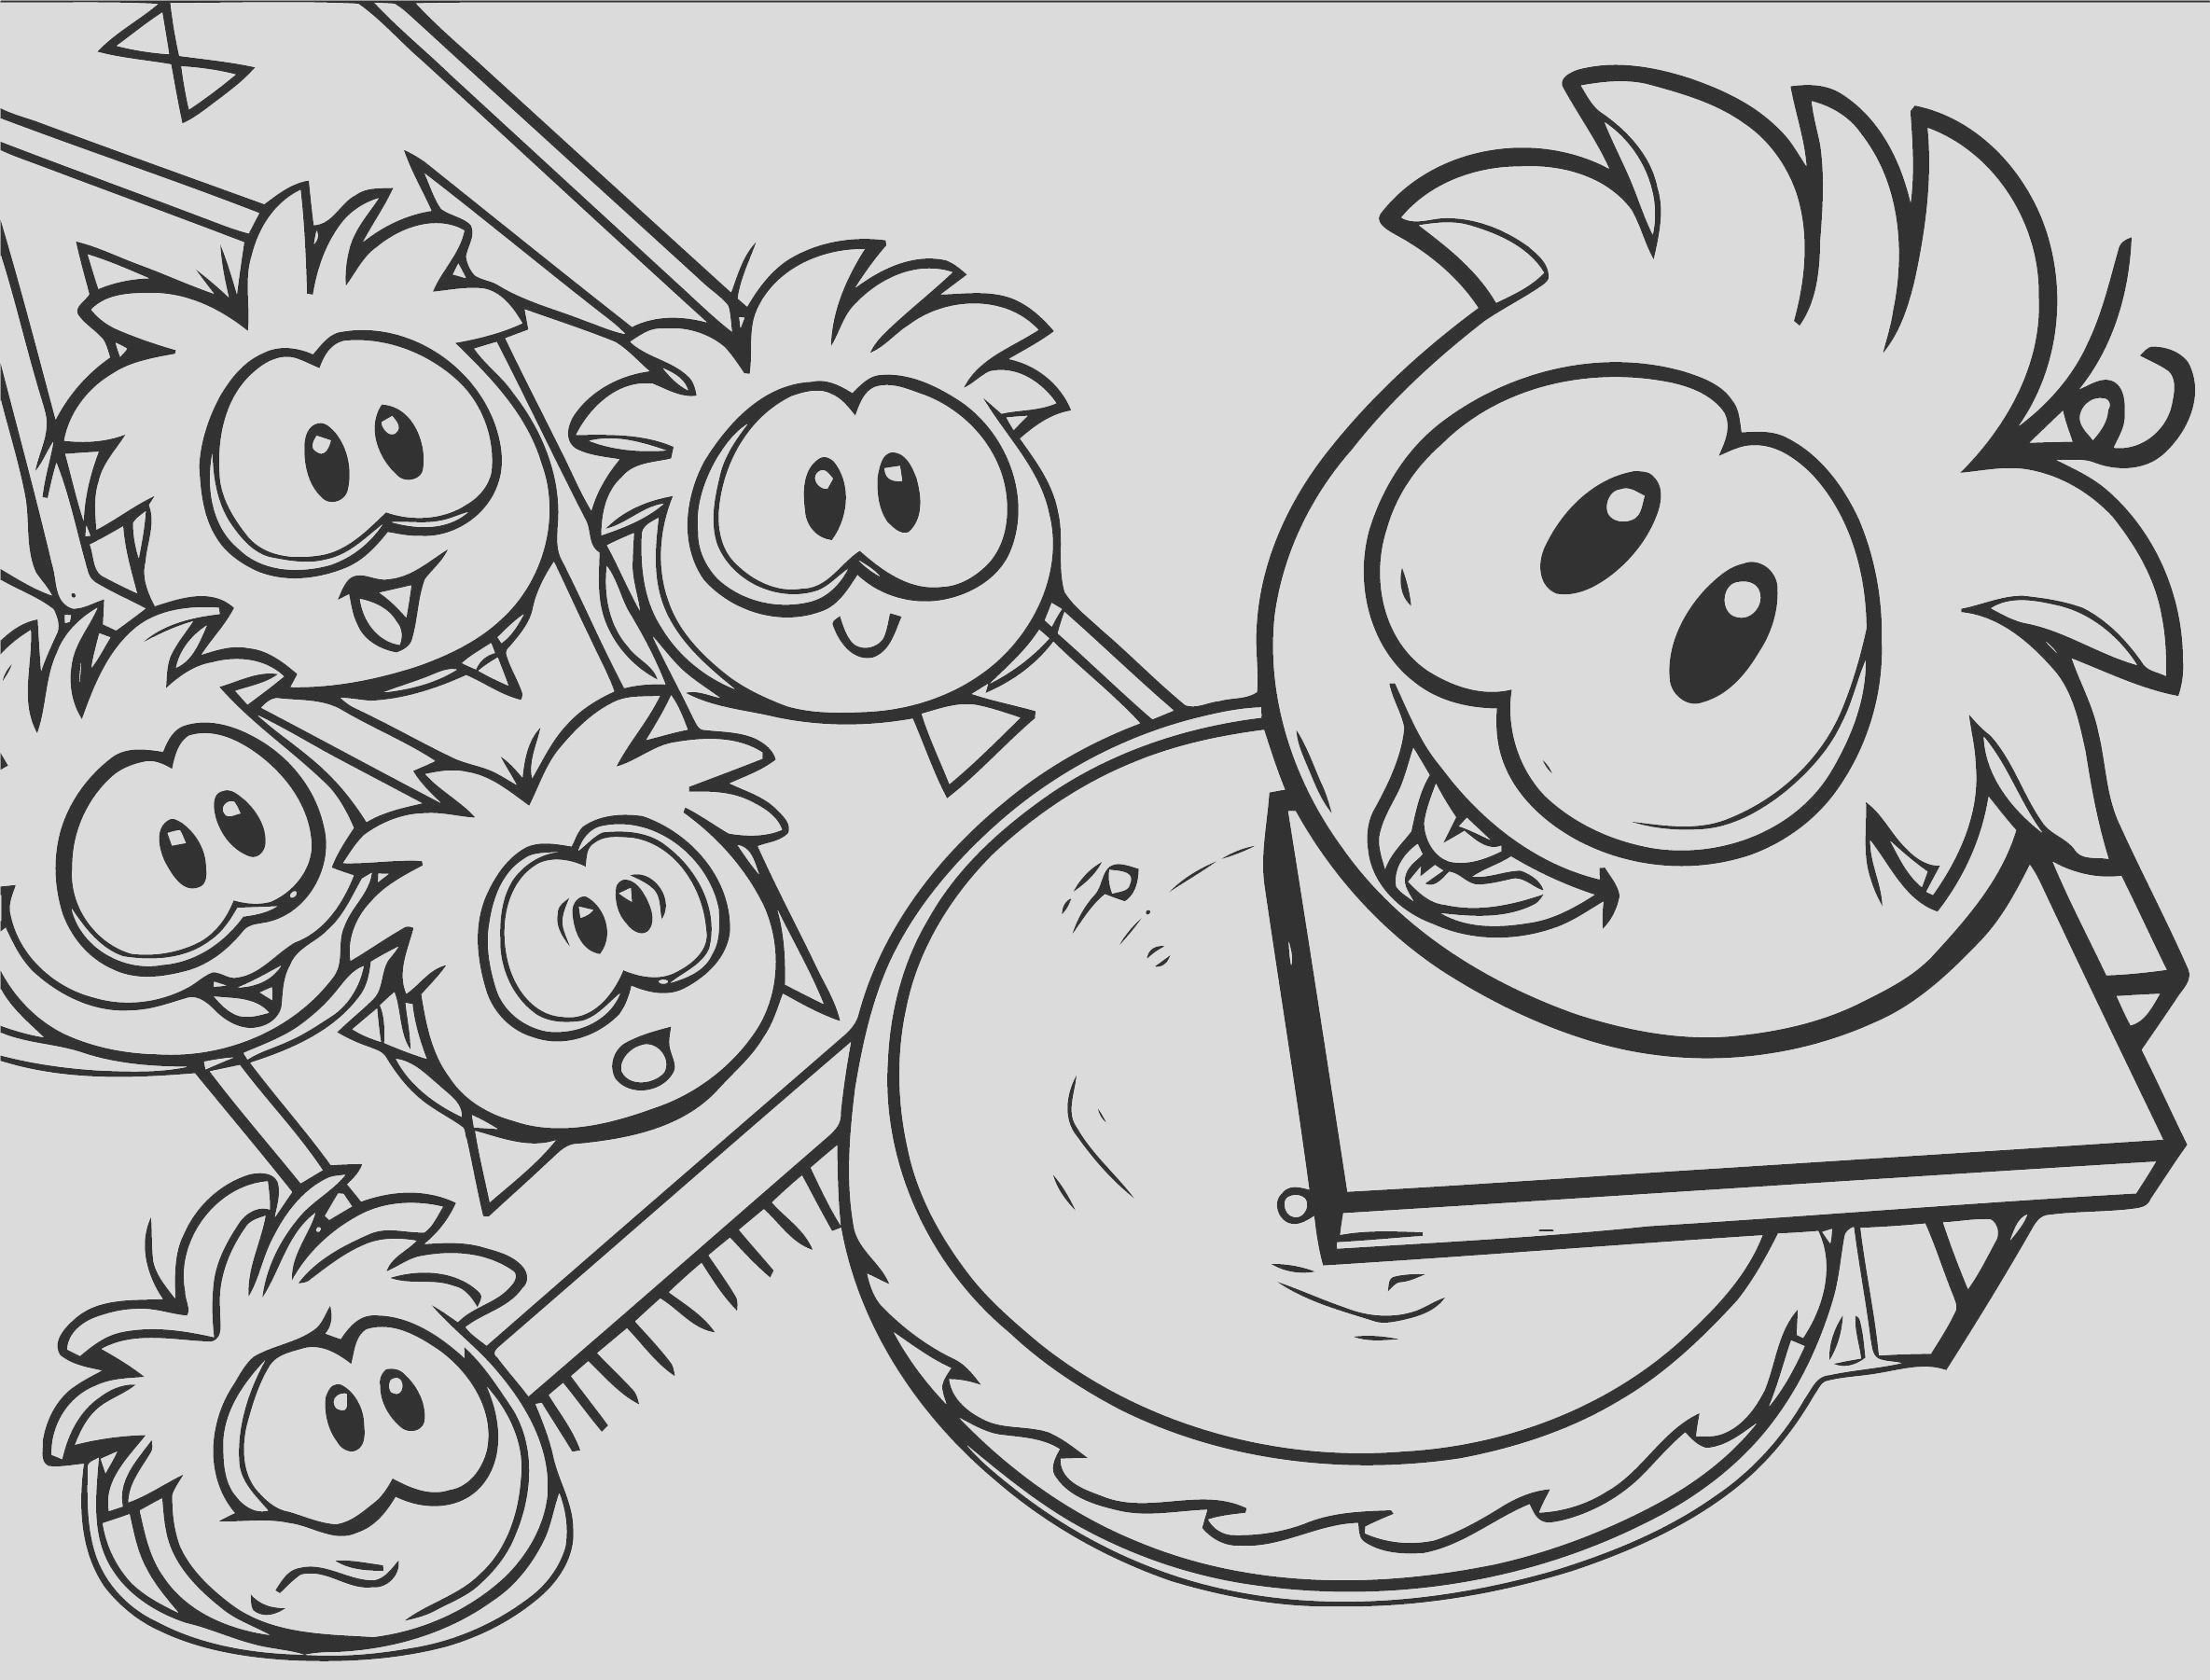 puffles club penguin coloring page